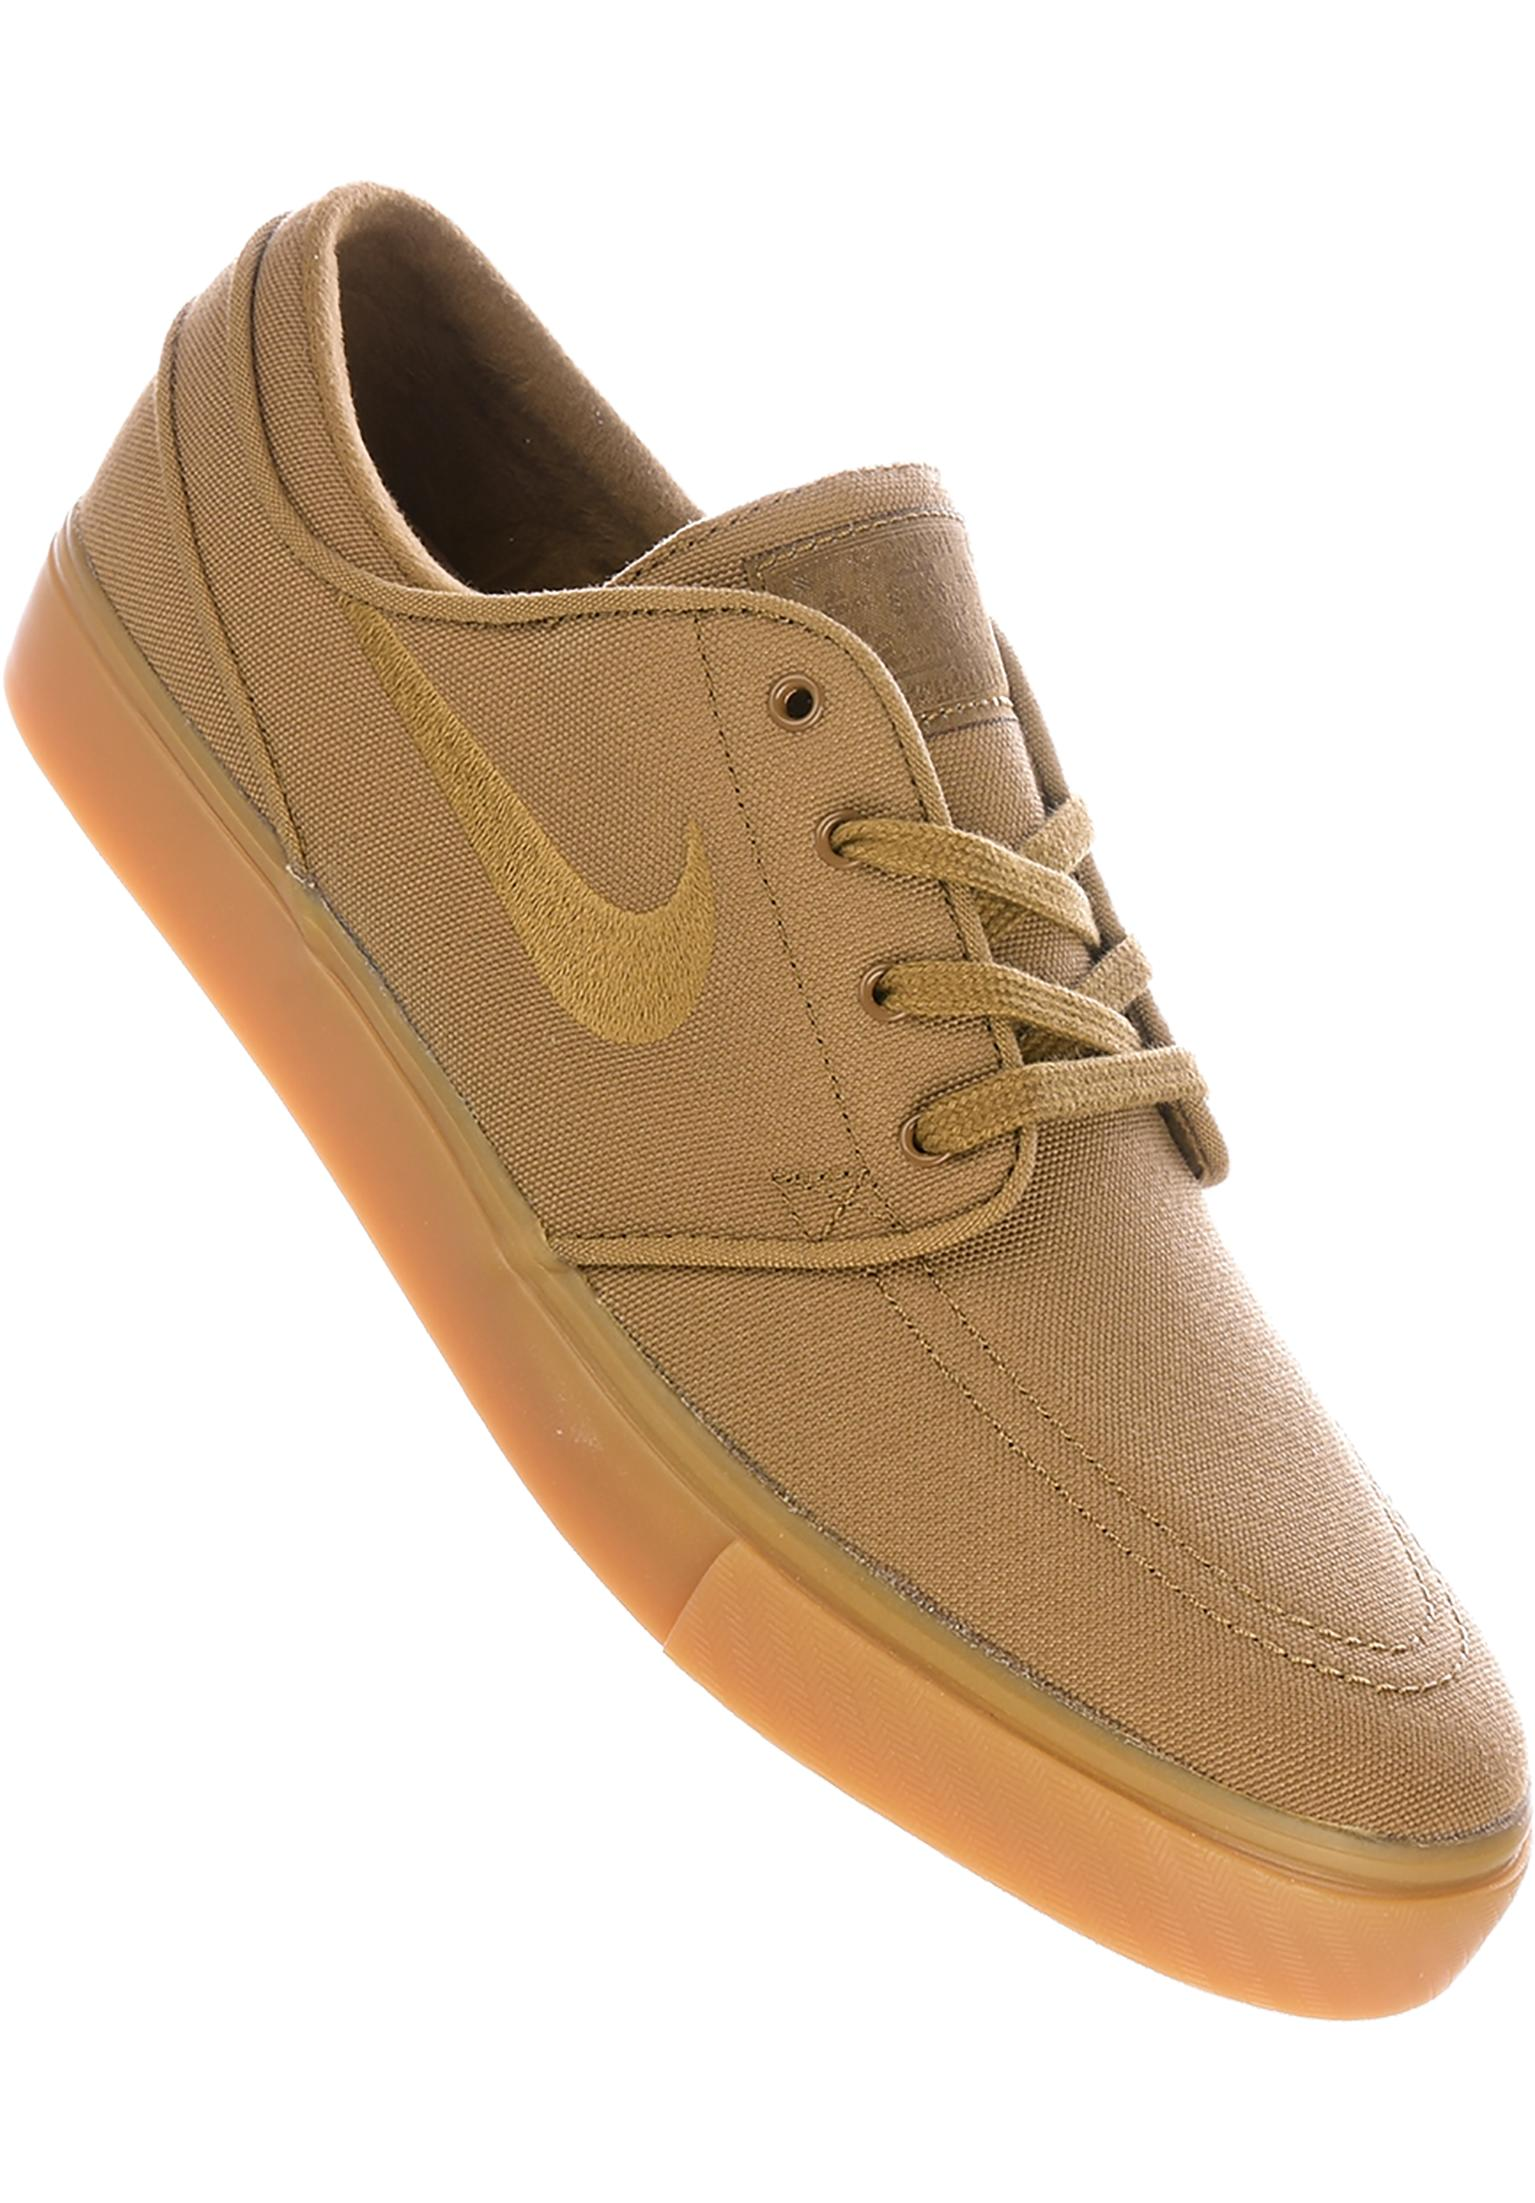 pretty nice 75ca7 c4eb5 Zoom Stefan Janoski CNVS Nike SB All Shoes in goldenbeige-gum for Men    Titus